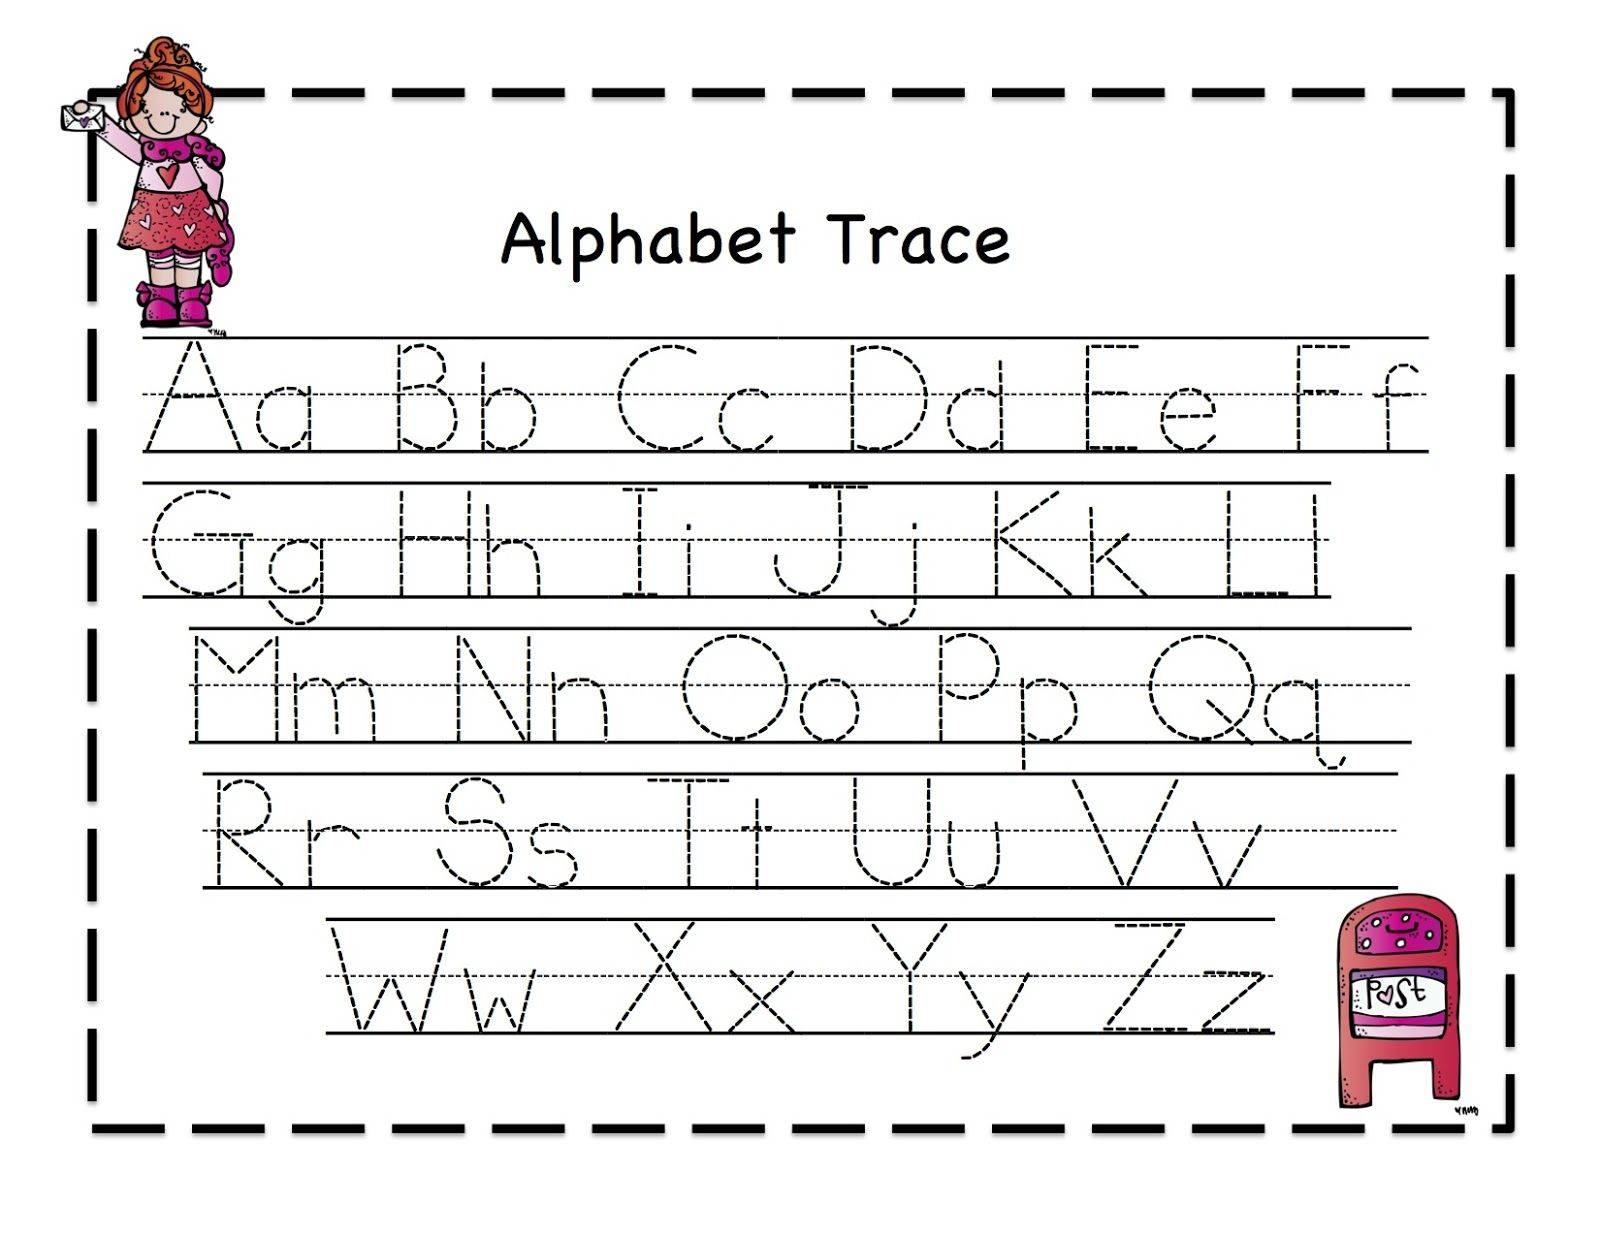 Free Worksheet Kindergarten Alphabet Tracing Worksheets – Free Alphabet Tracing Worksheets